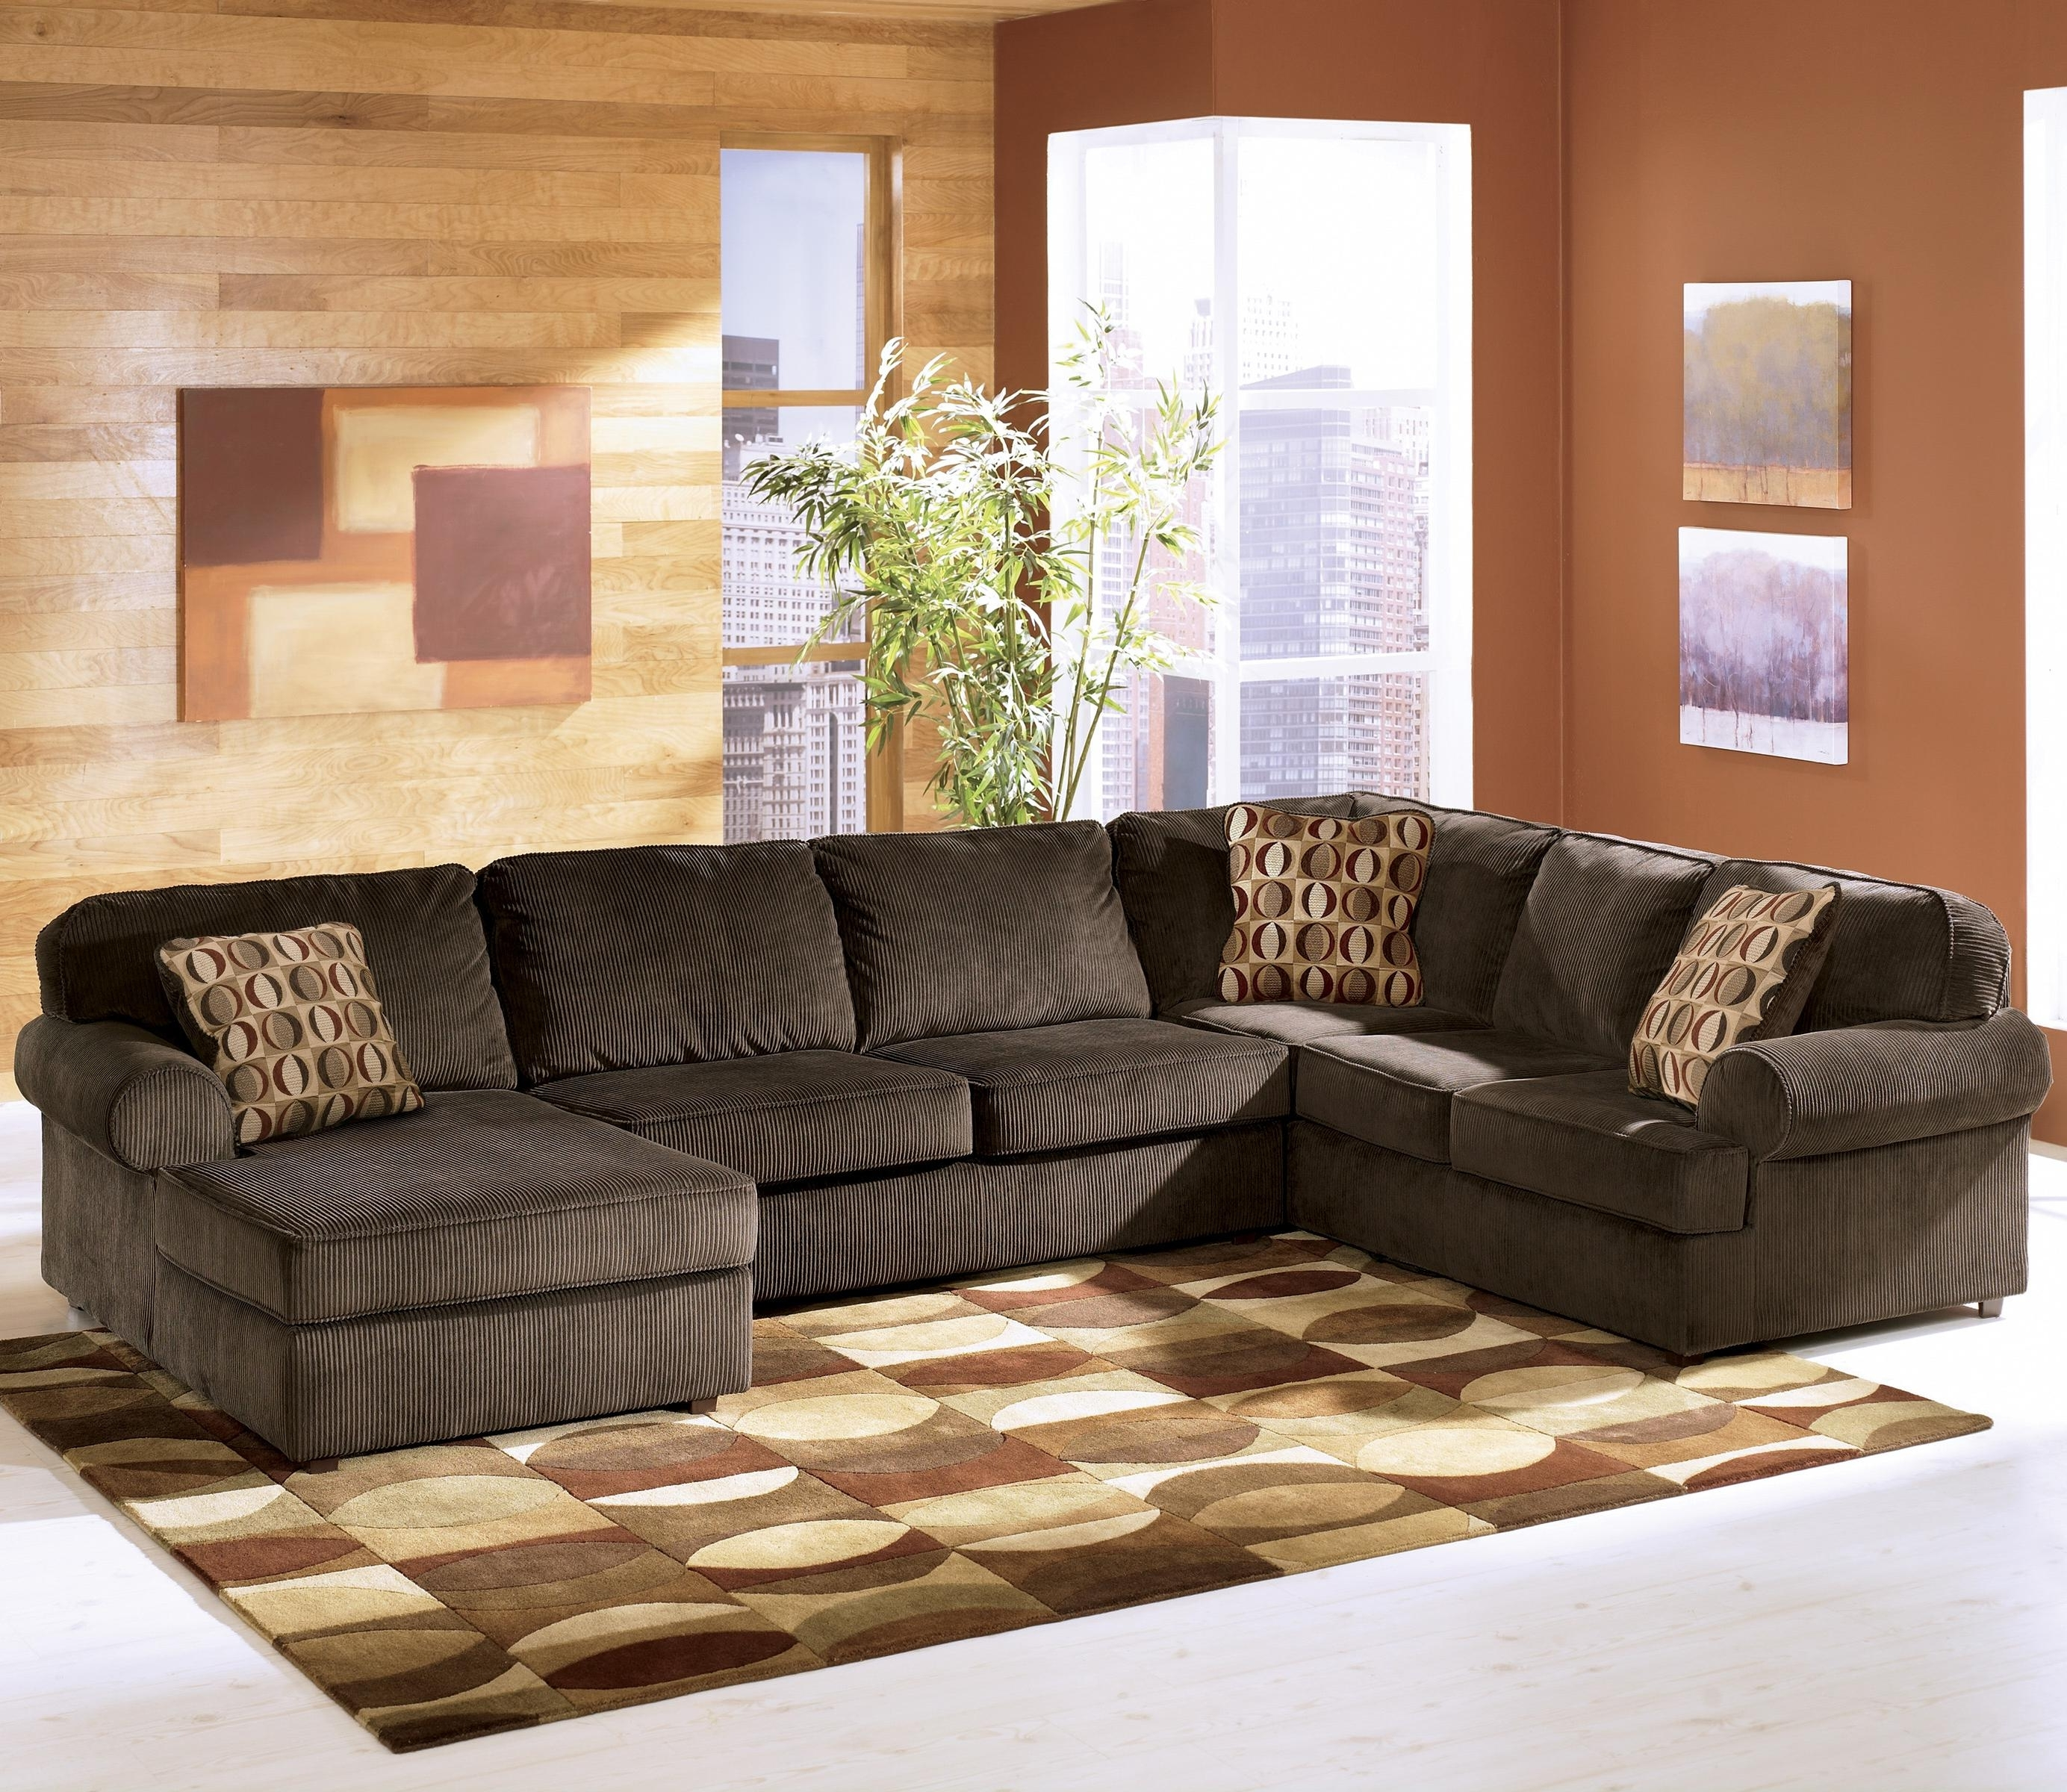 Eau Claire Wi Sectional Sofas With Latest Furniture (View 9 of 20)